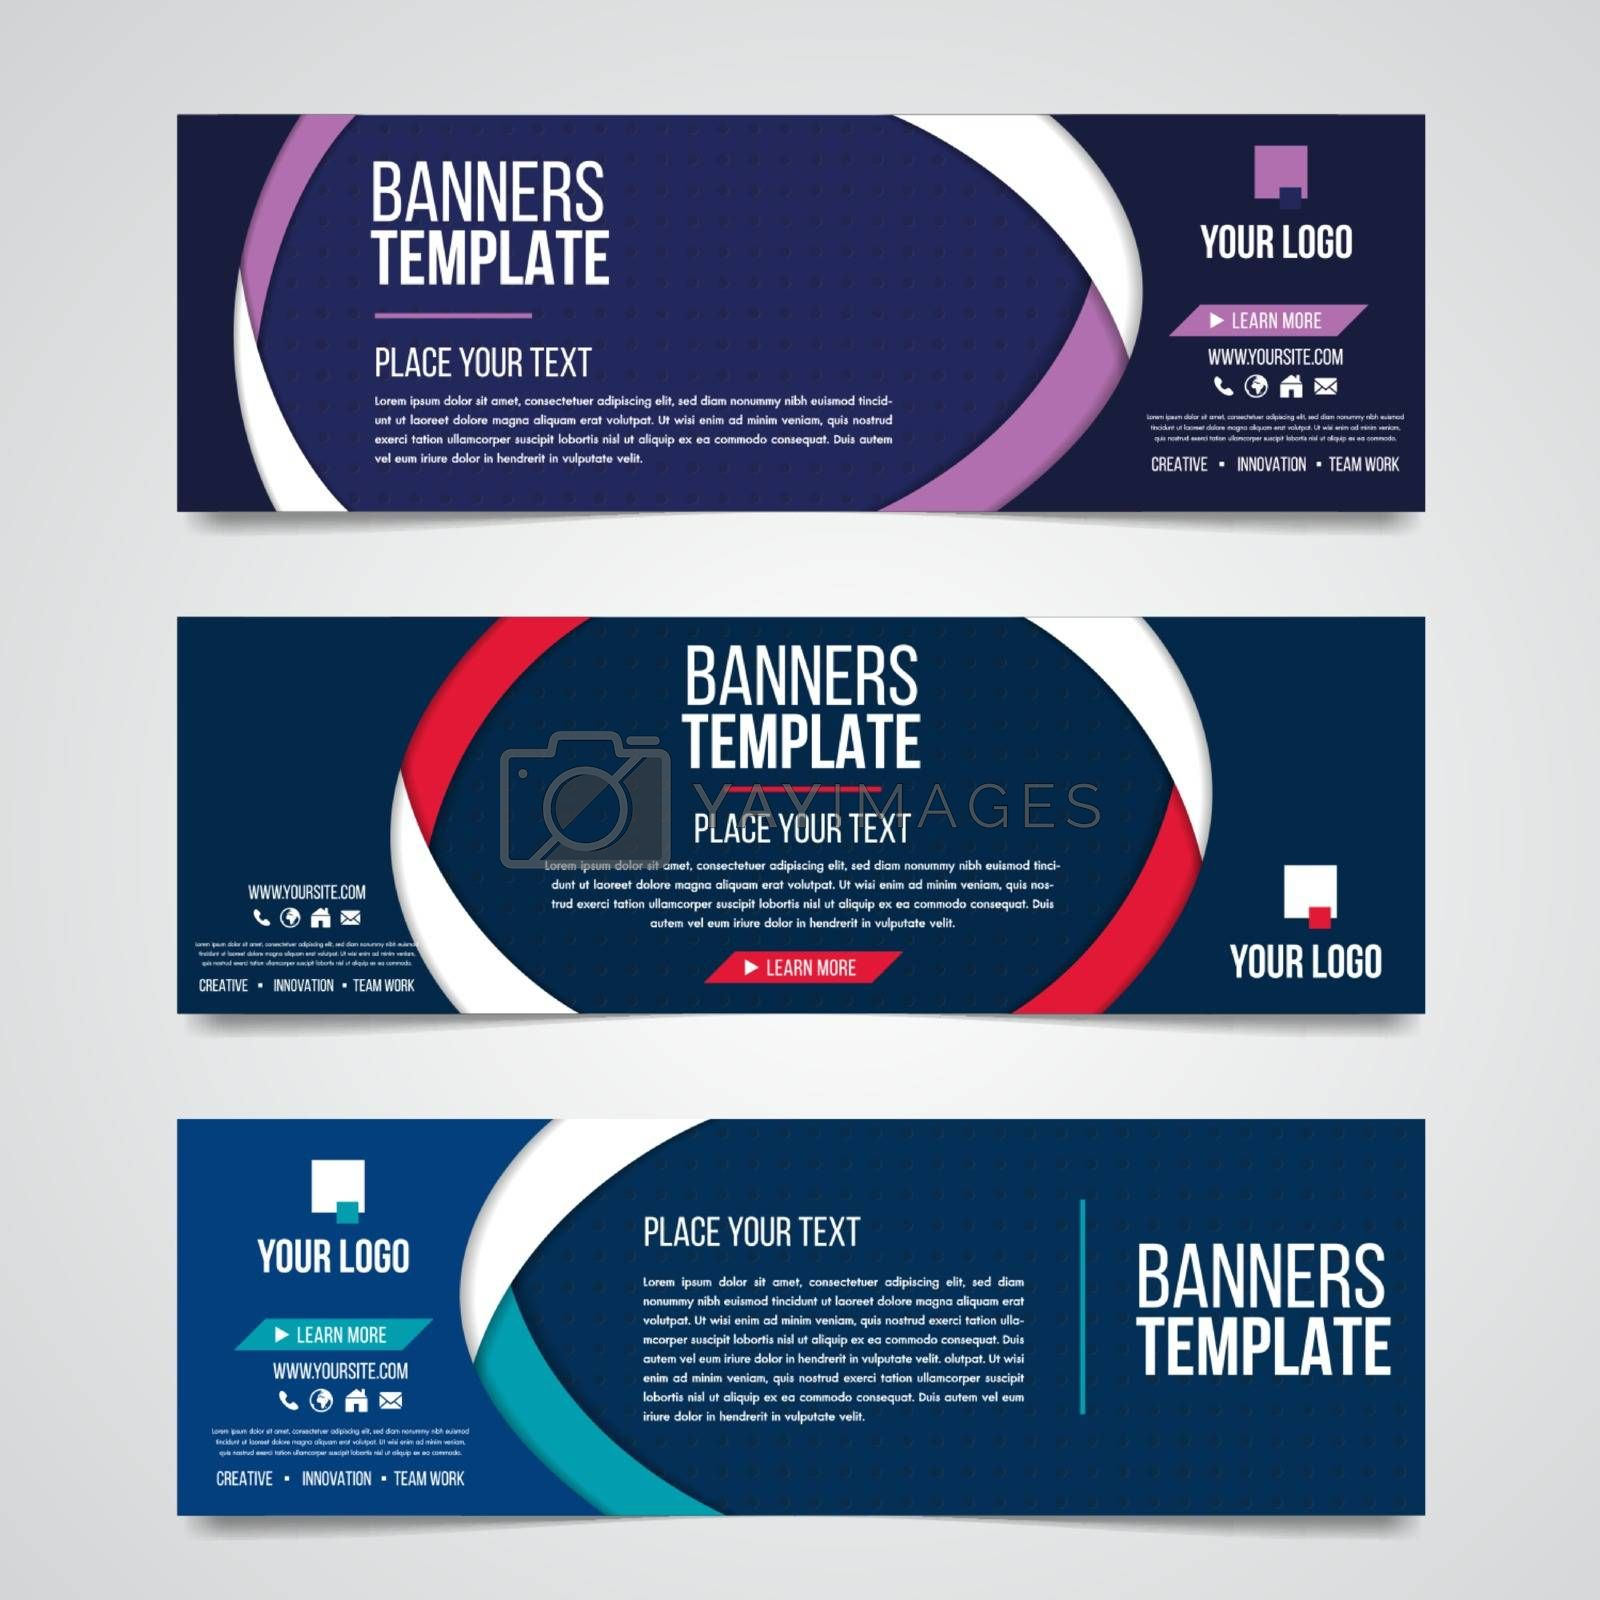 Abstract horizontal business banner geometric shapes design web set template background or header Templates place for text.